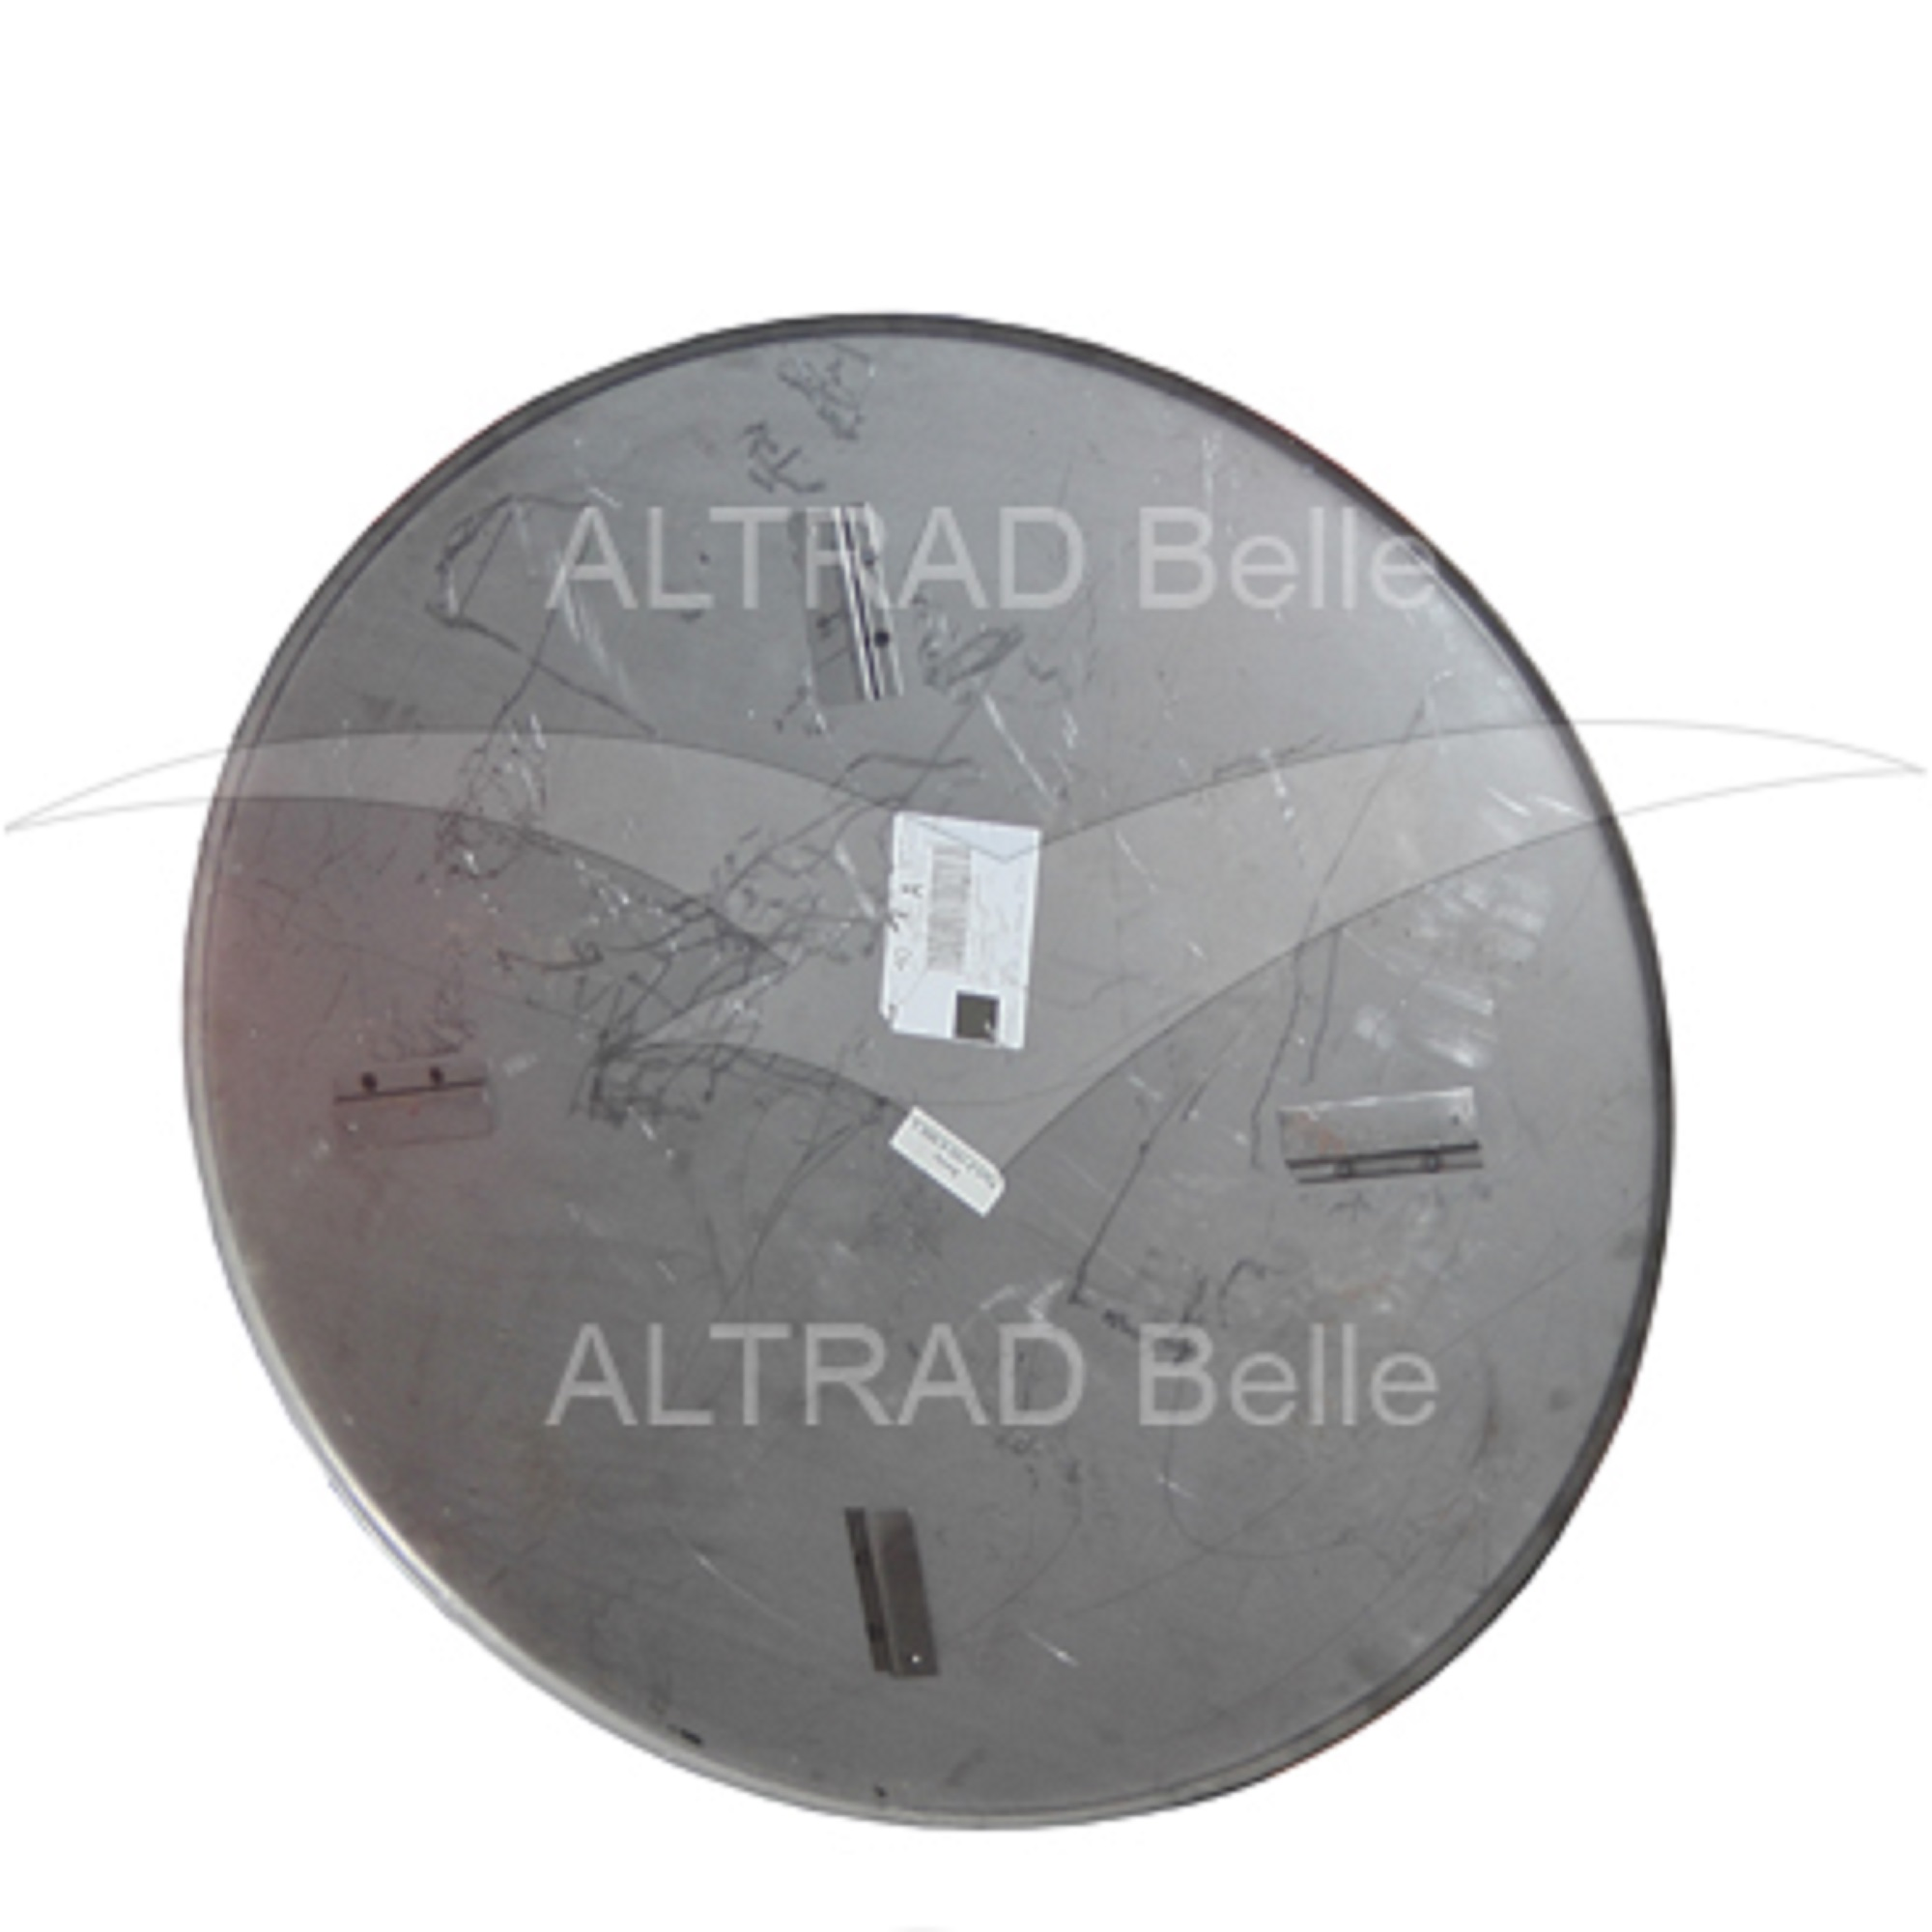 Silver circular metal float pan for the Belle PRO 1200 trowel